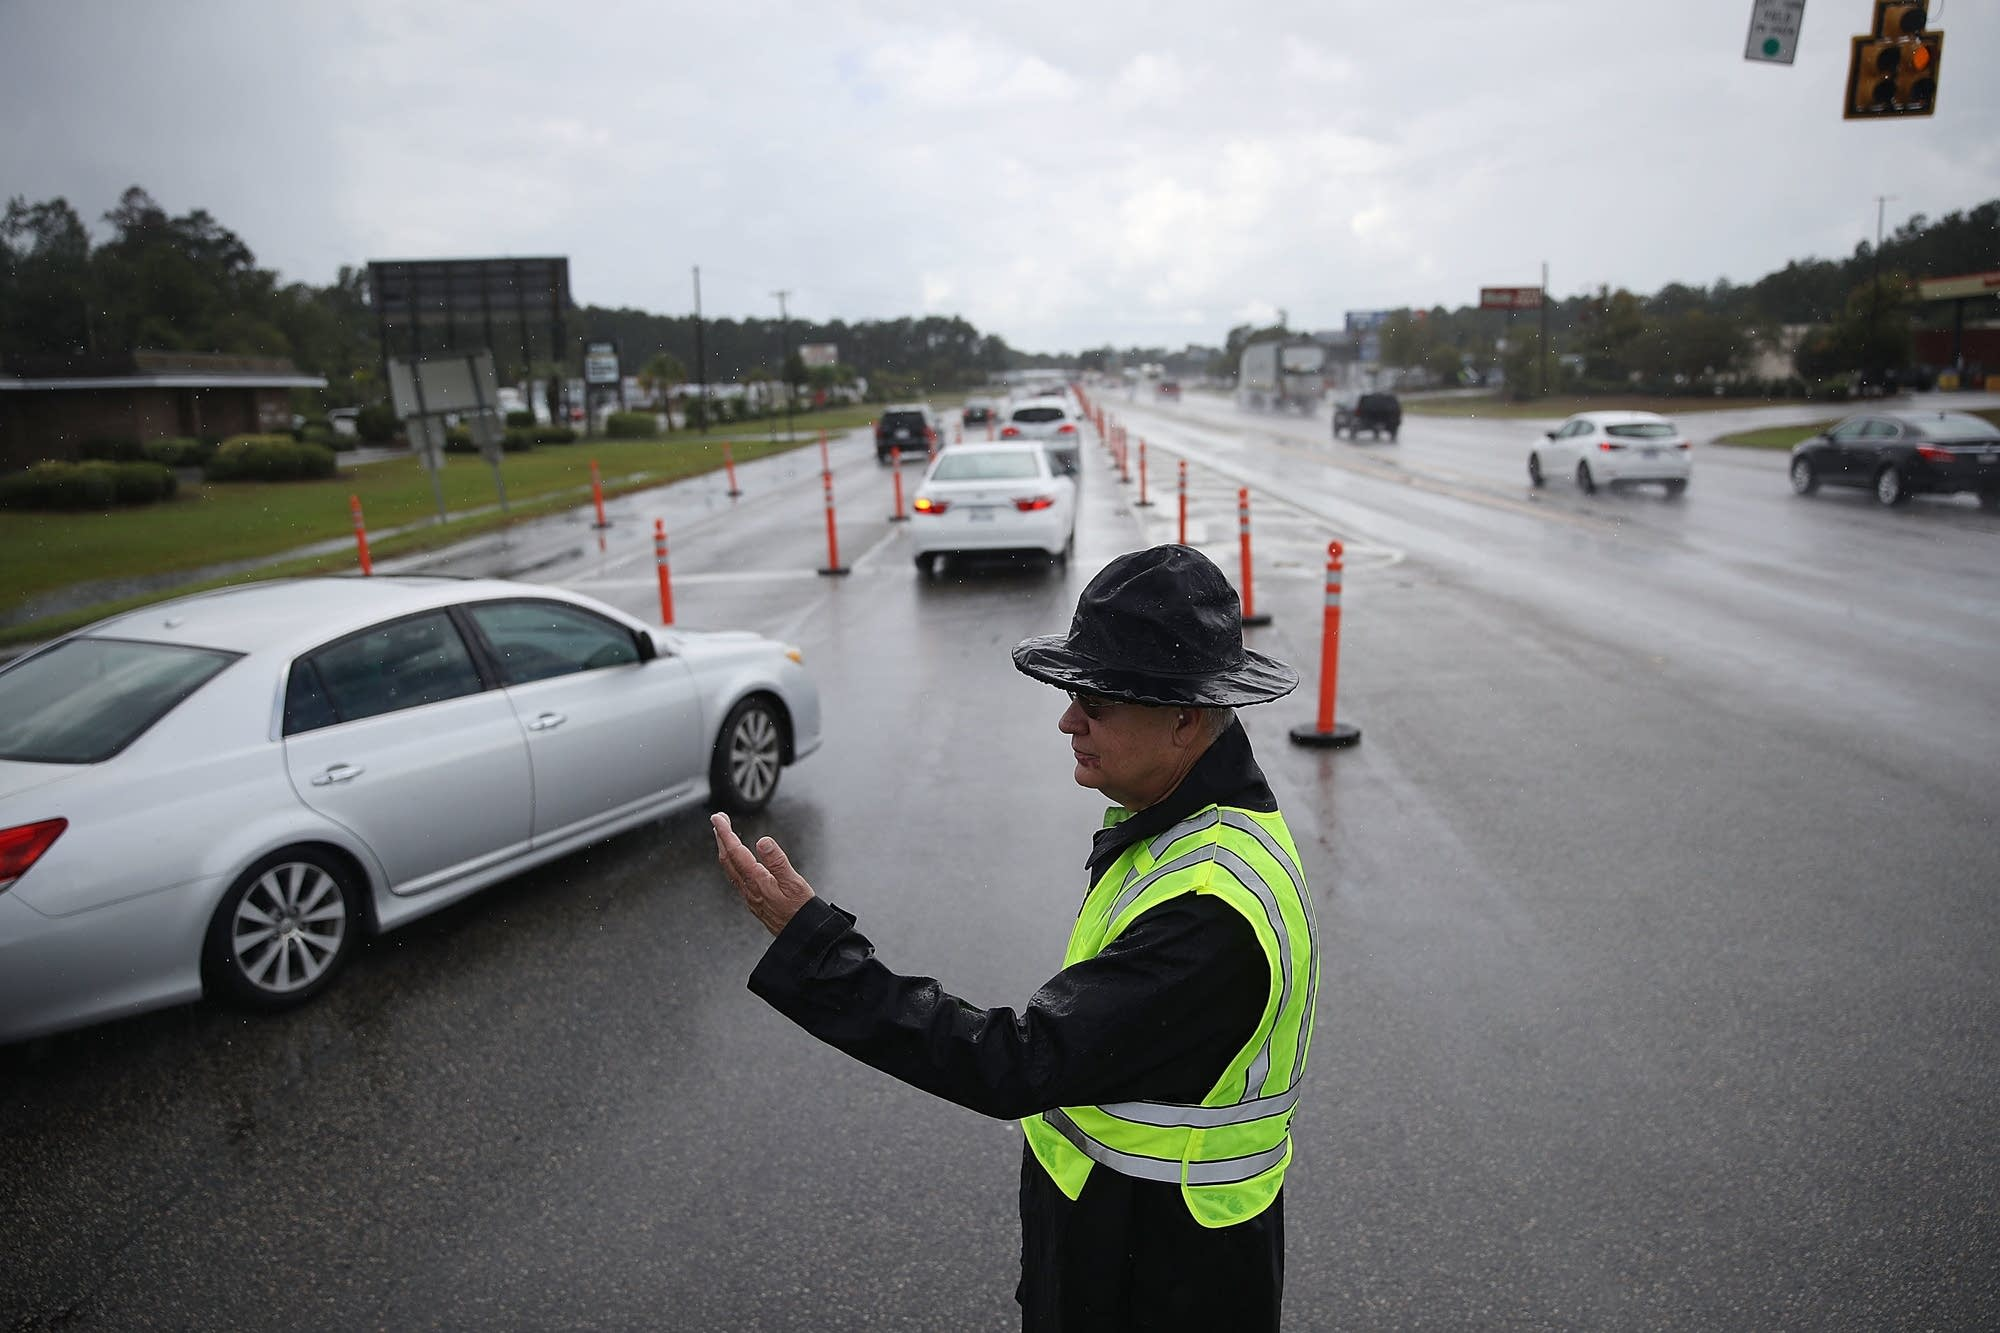 Jack Ross from the South Carolina Highway Patrol directs traffic.